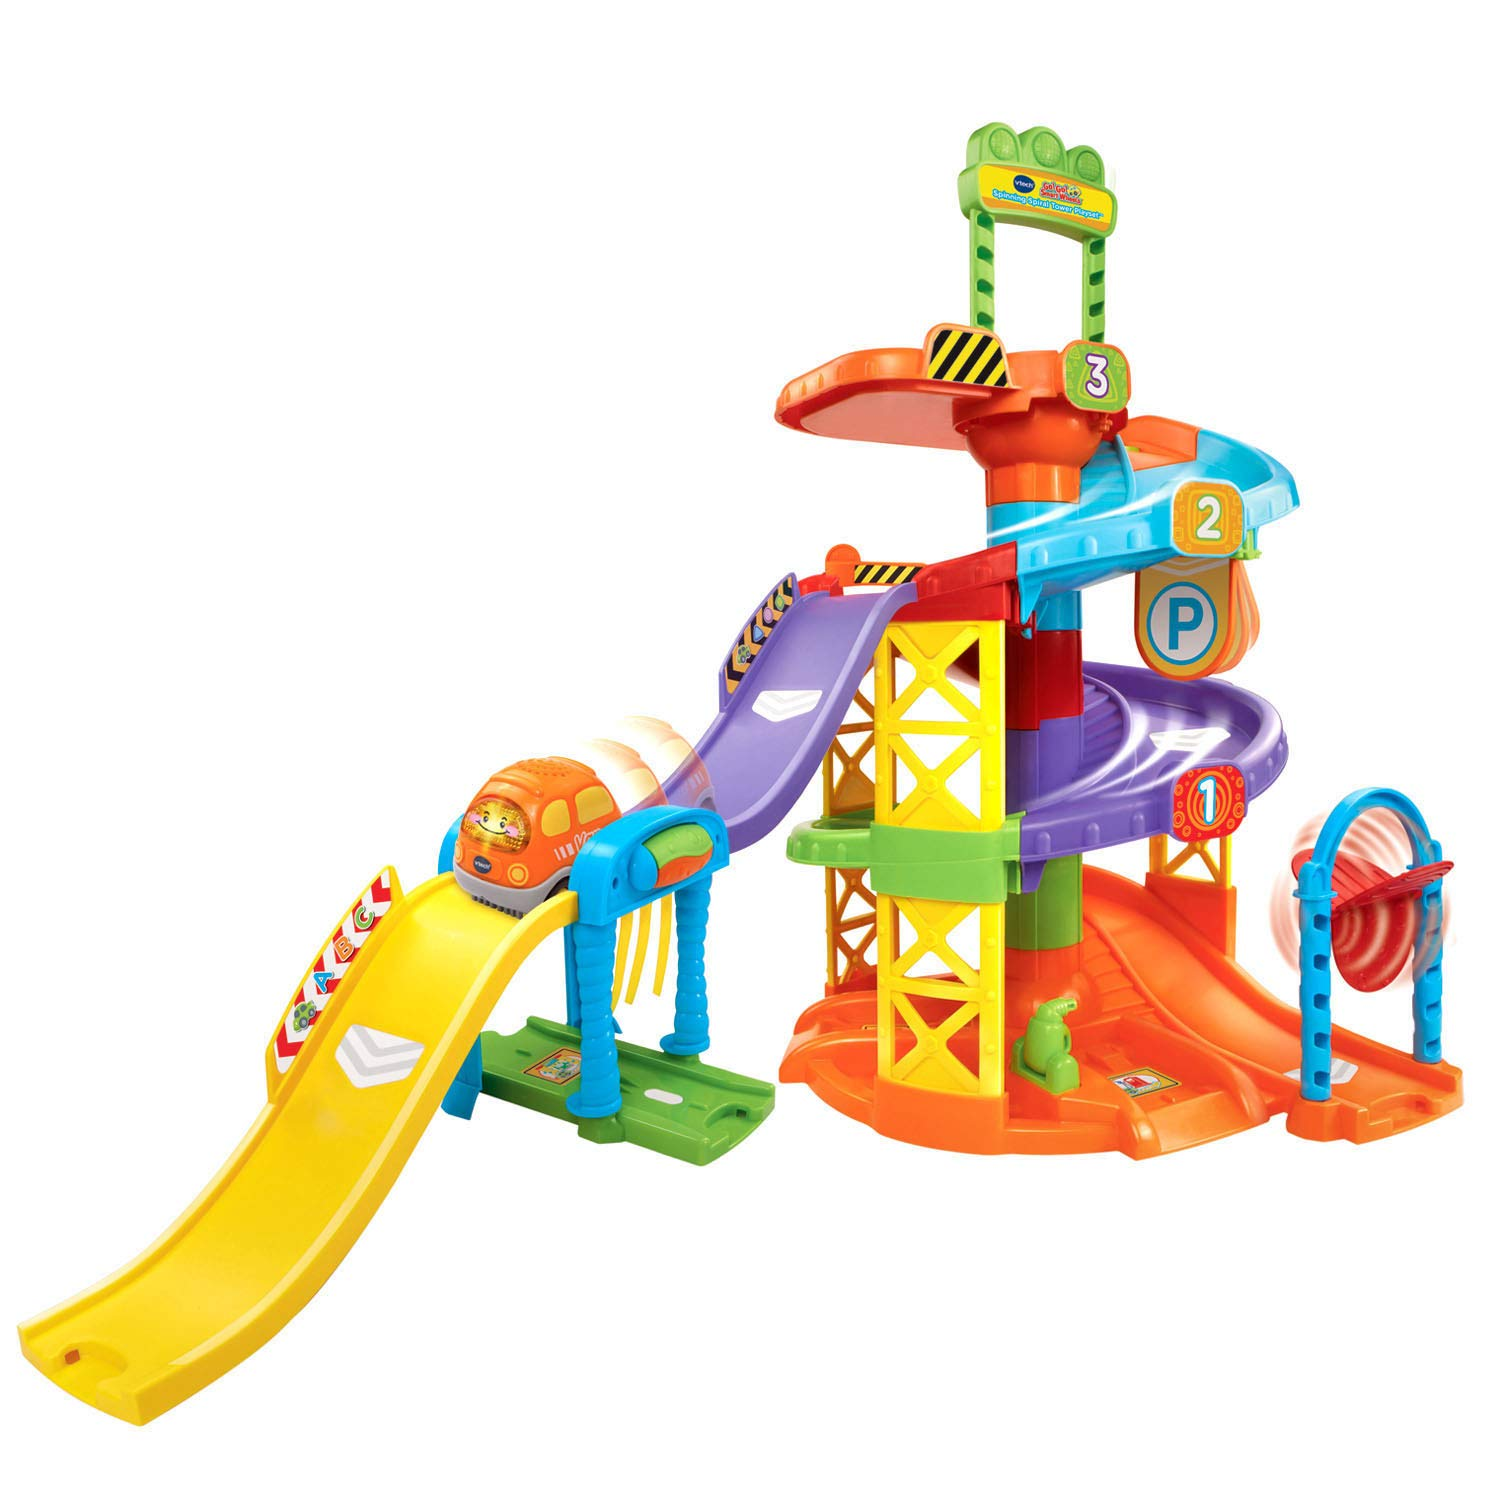 VTech Go! Go! Smart Wheels Spinning Spiral Tower Playset Multicolor, 12.60 x 20.67 x 28.15 Inches